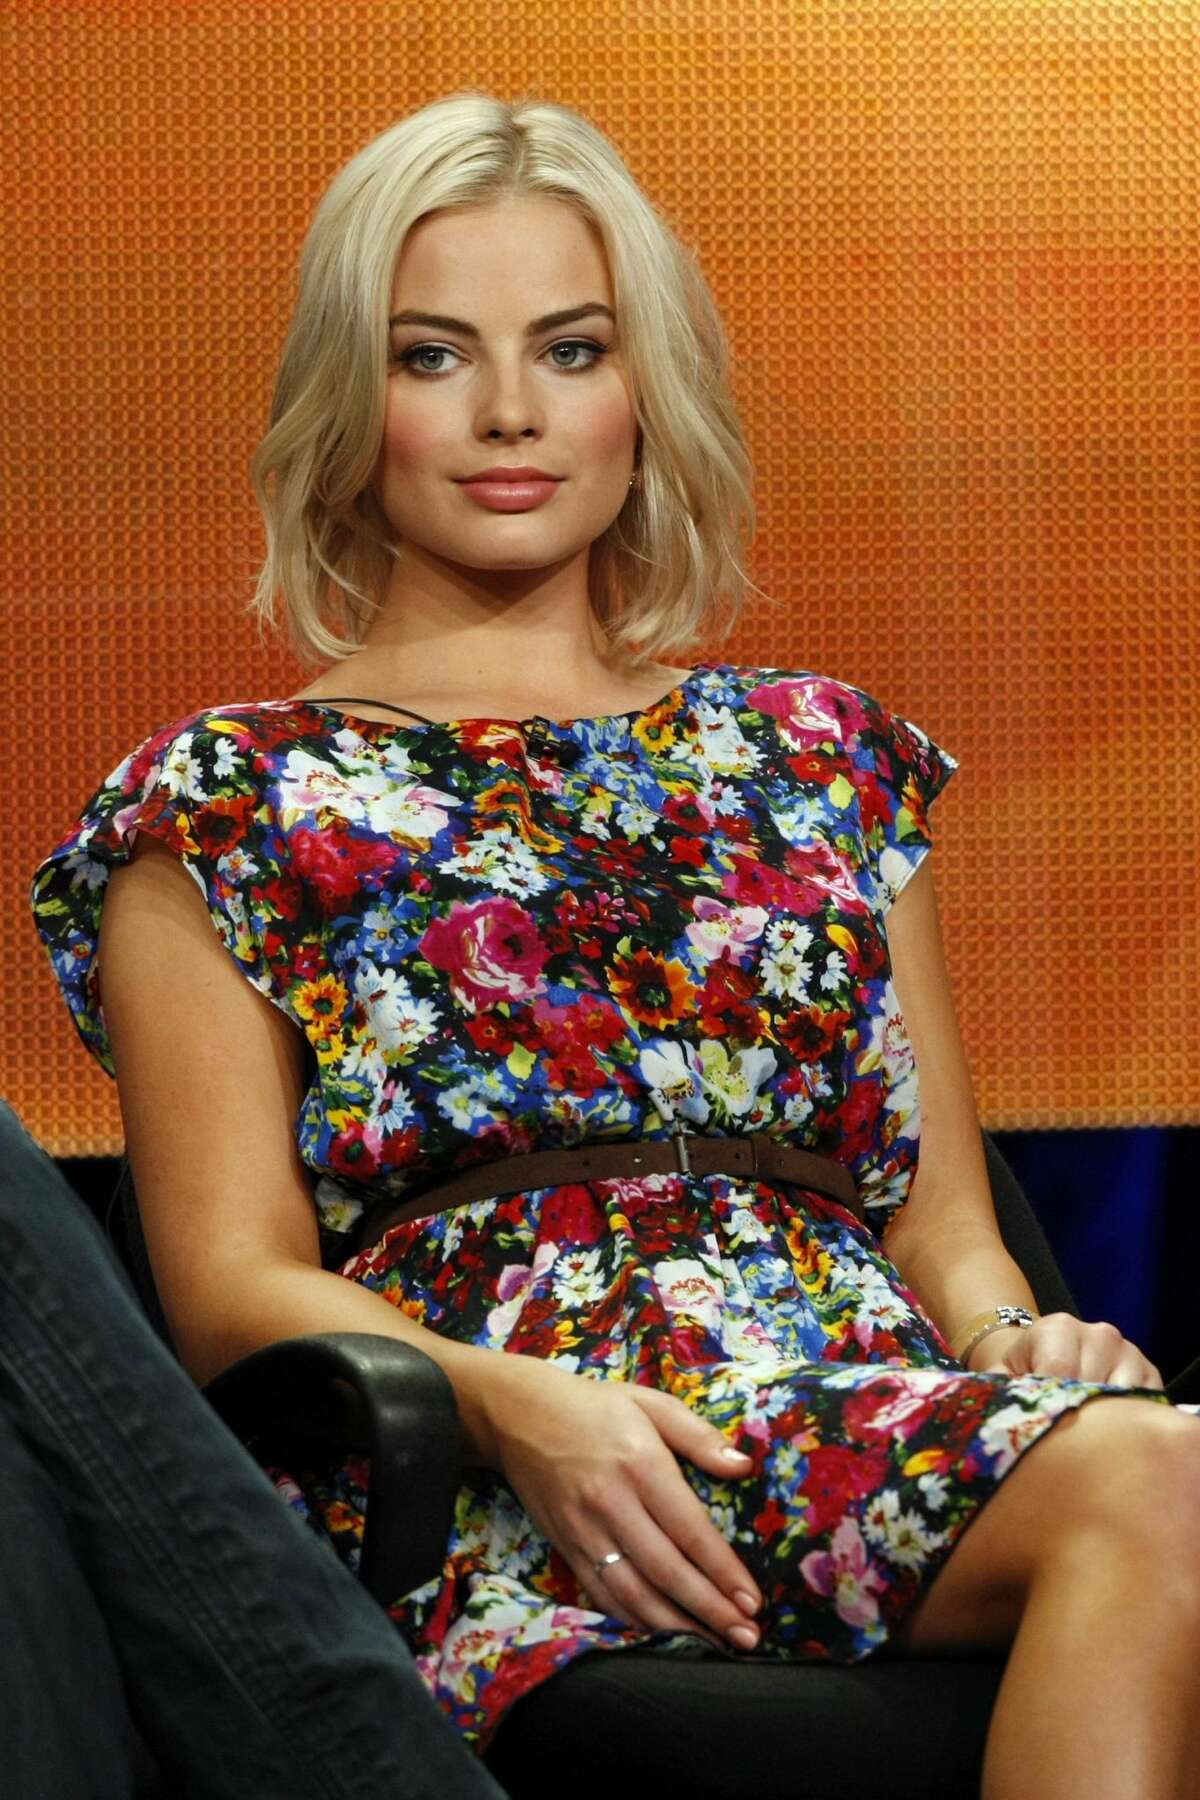 Margot Robbie: Born July 2, 1990 in Dalby, Australia. Photo caption: Robbie at the Disney/ABC Television Group 2011 Summer Press Tour at the Beverly Hills Hilton in Beverly Hills, Calif.